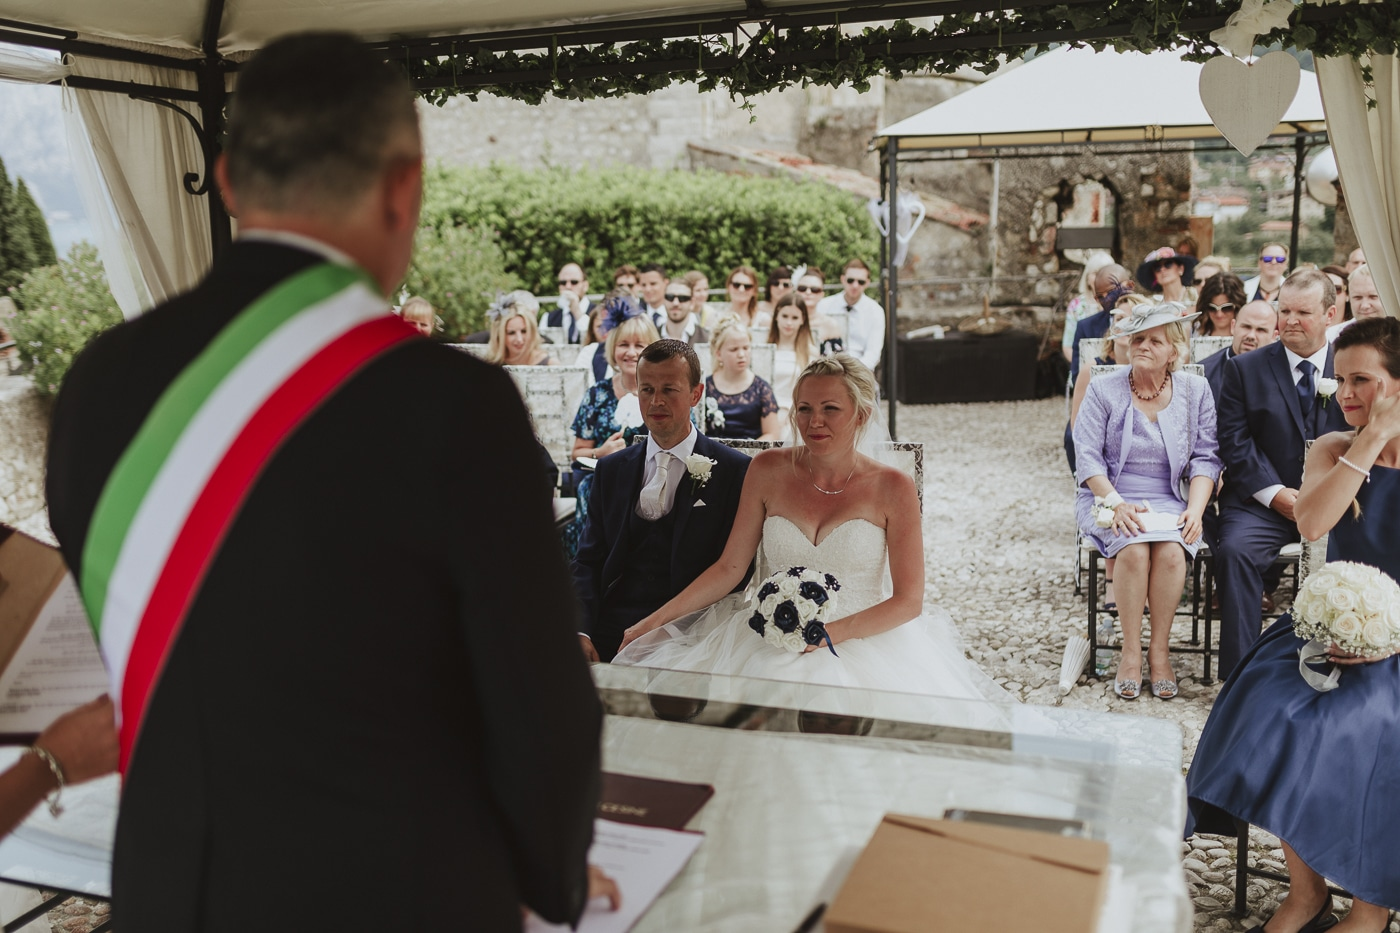 Officiant holding wedding ceremony standing in front of the bride and groom with their guests in the background